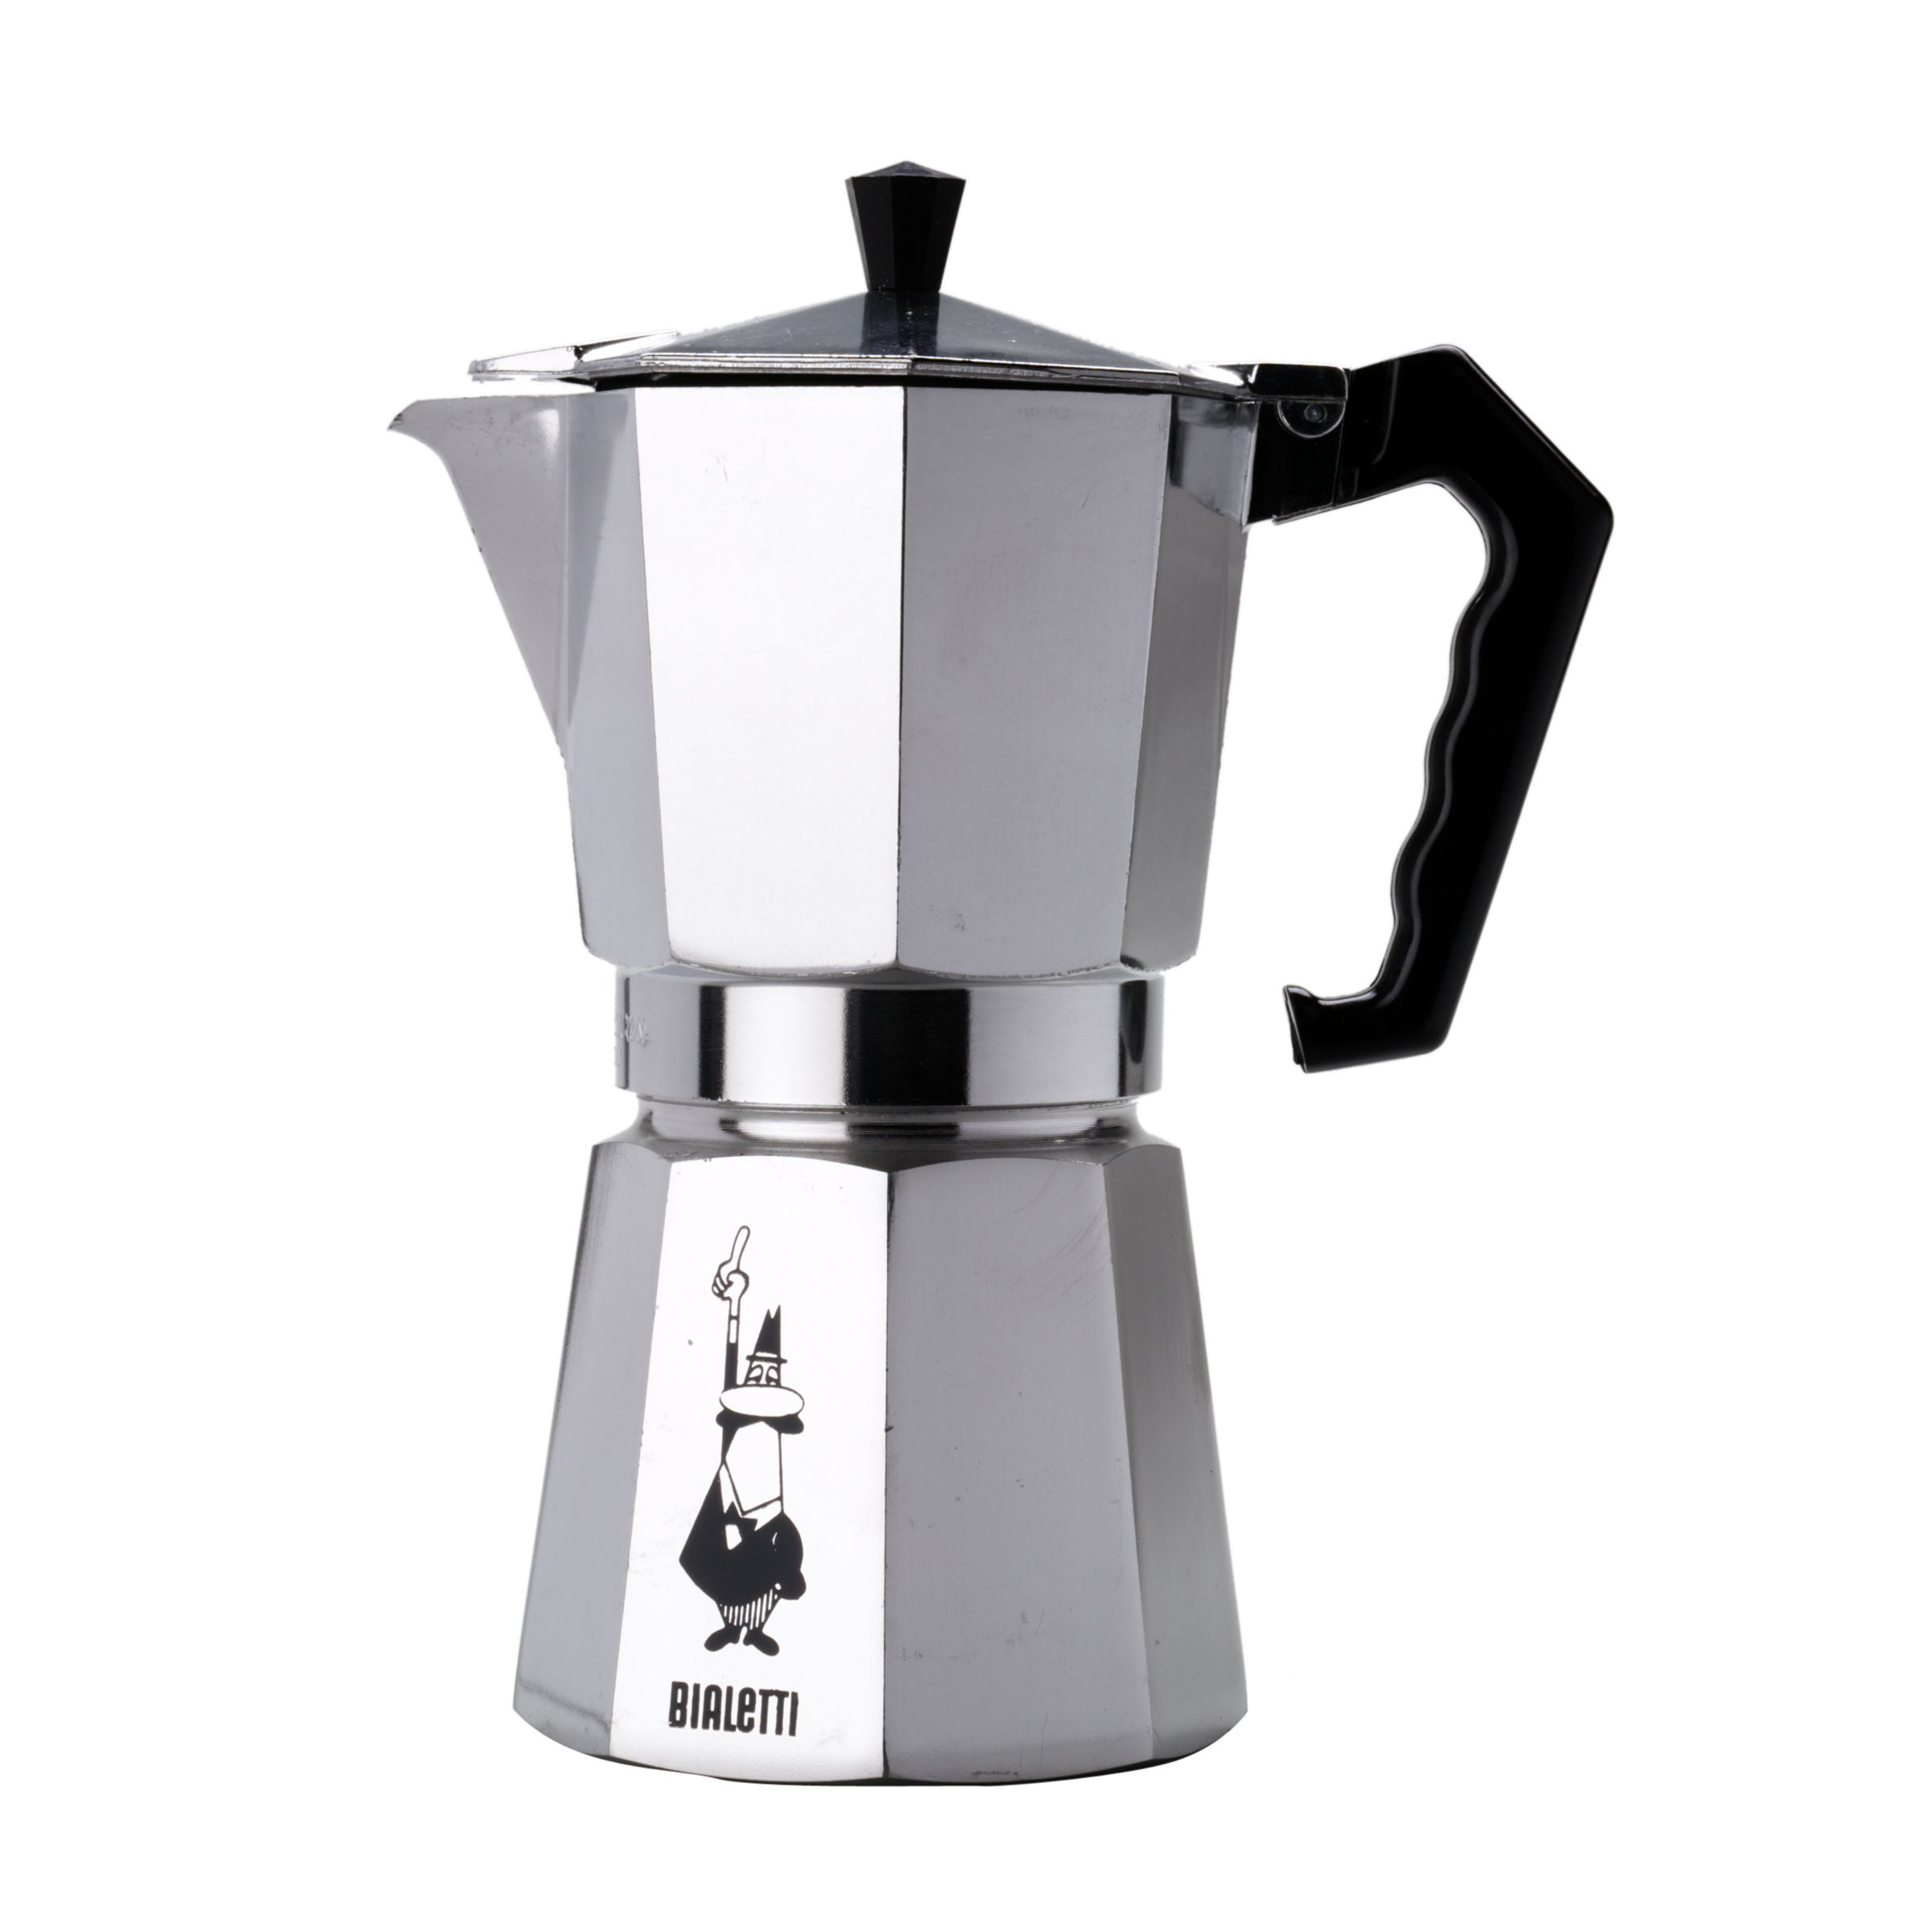 Steam Press Coffee Maker : Italian Coffee Maker Food and Drink Pictures